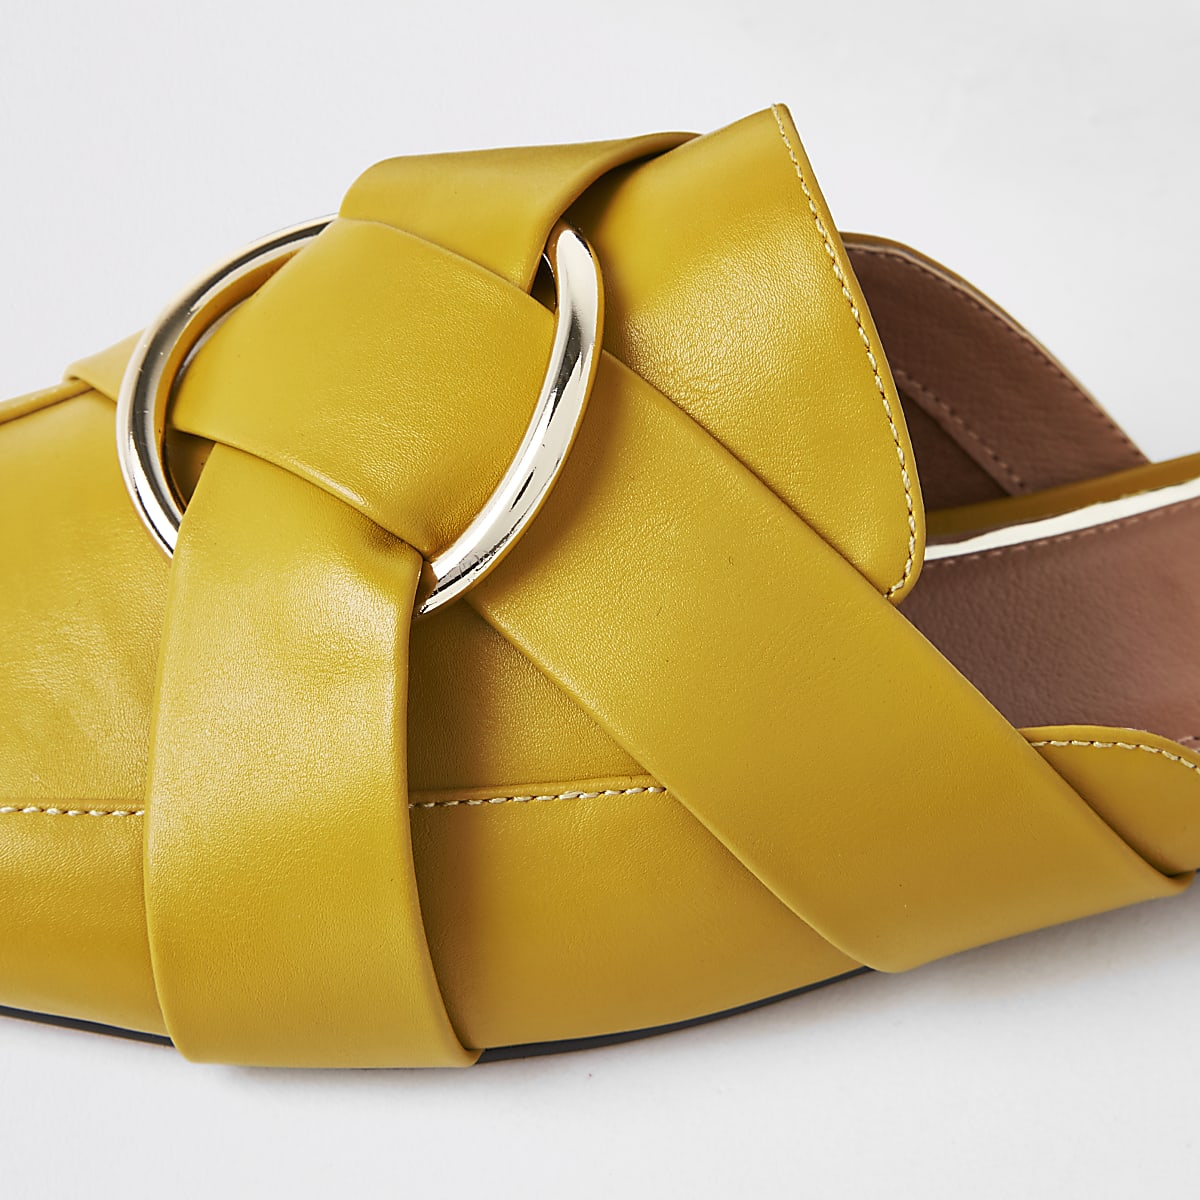 f214b0dbae1 Home · Women · Shoes   boots  Yellow ring backless loafer. Yellow ring  backless loafer ...